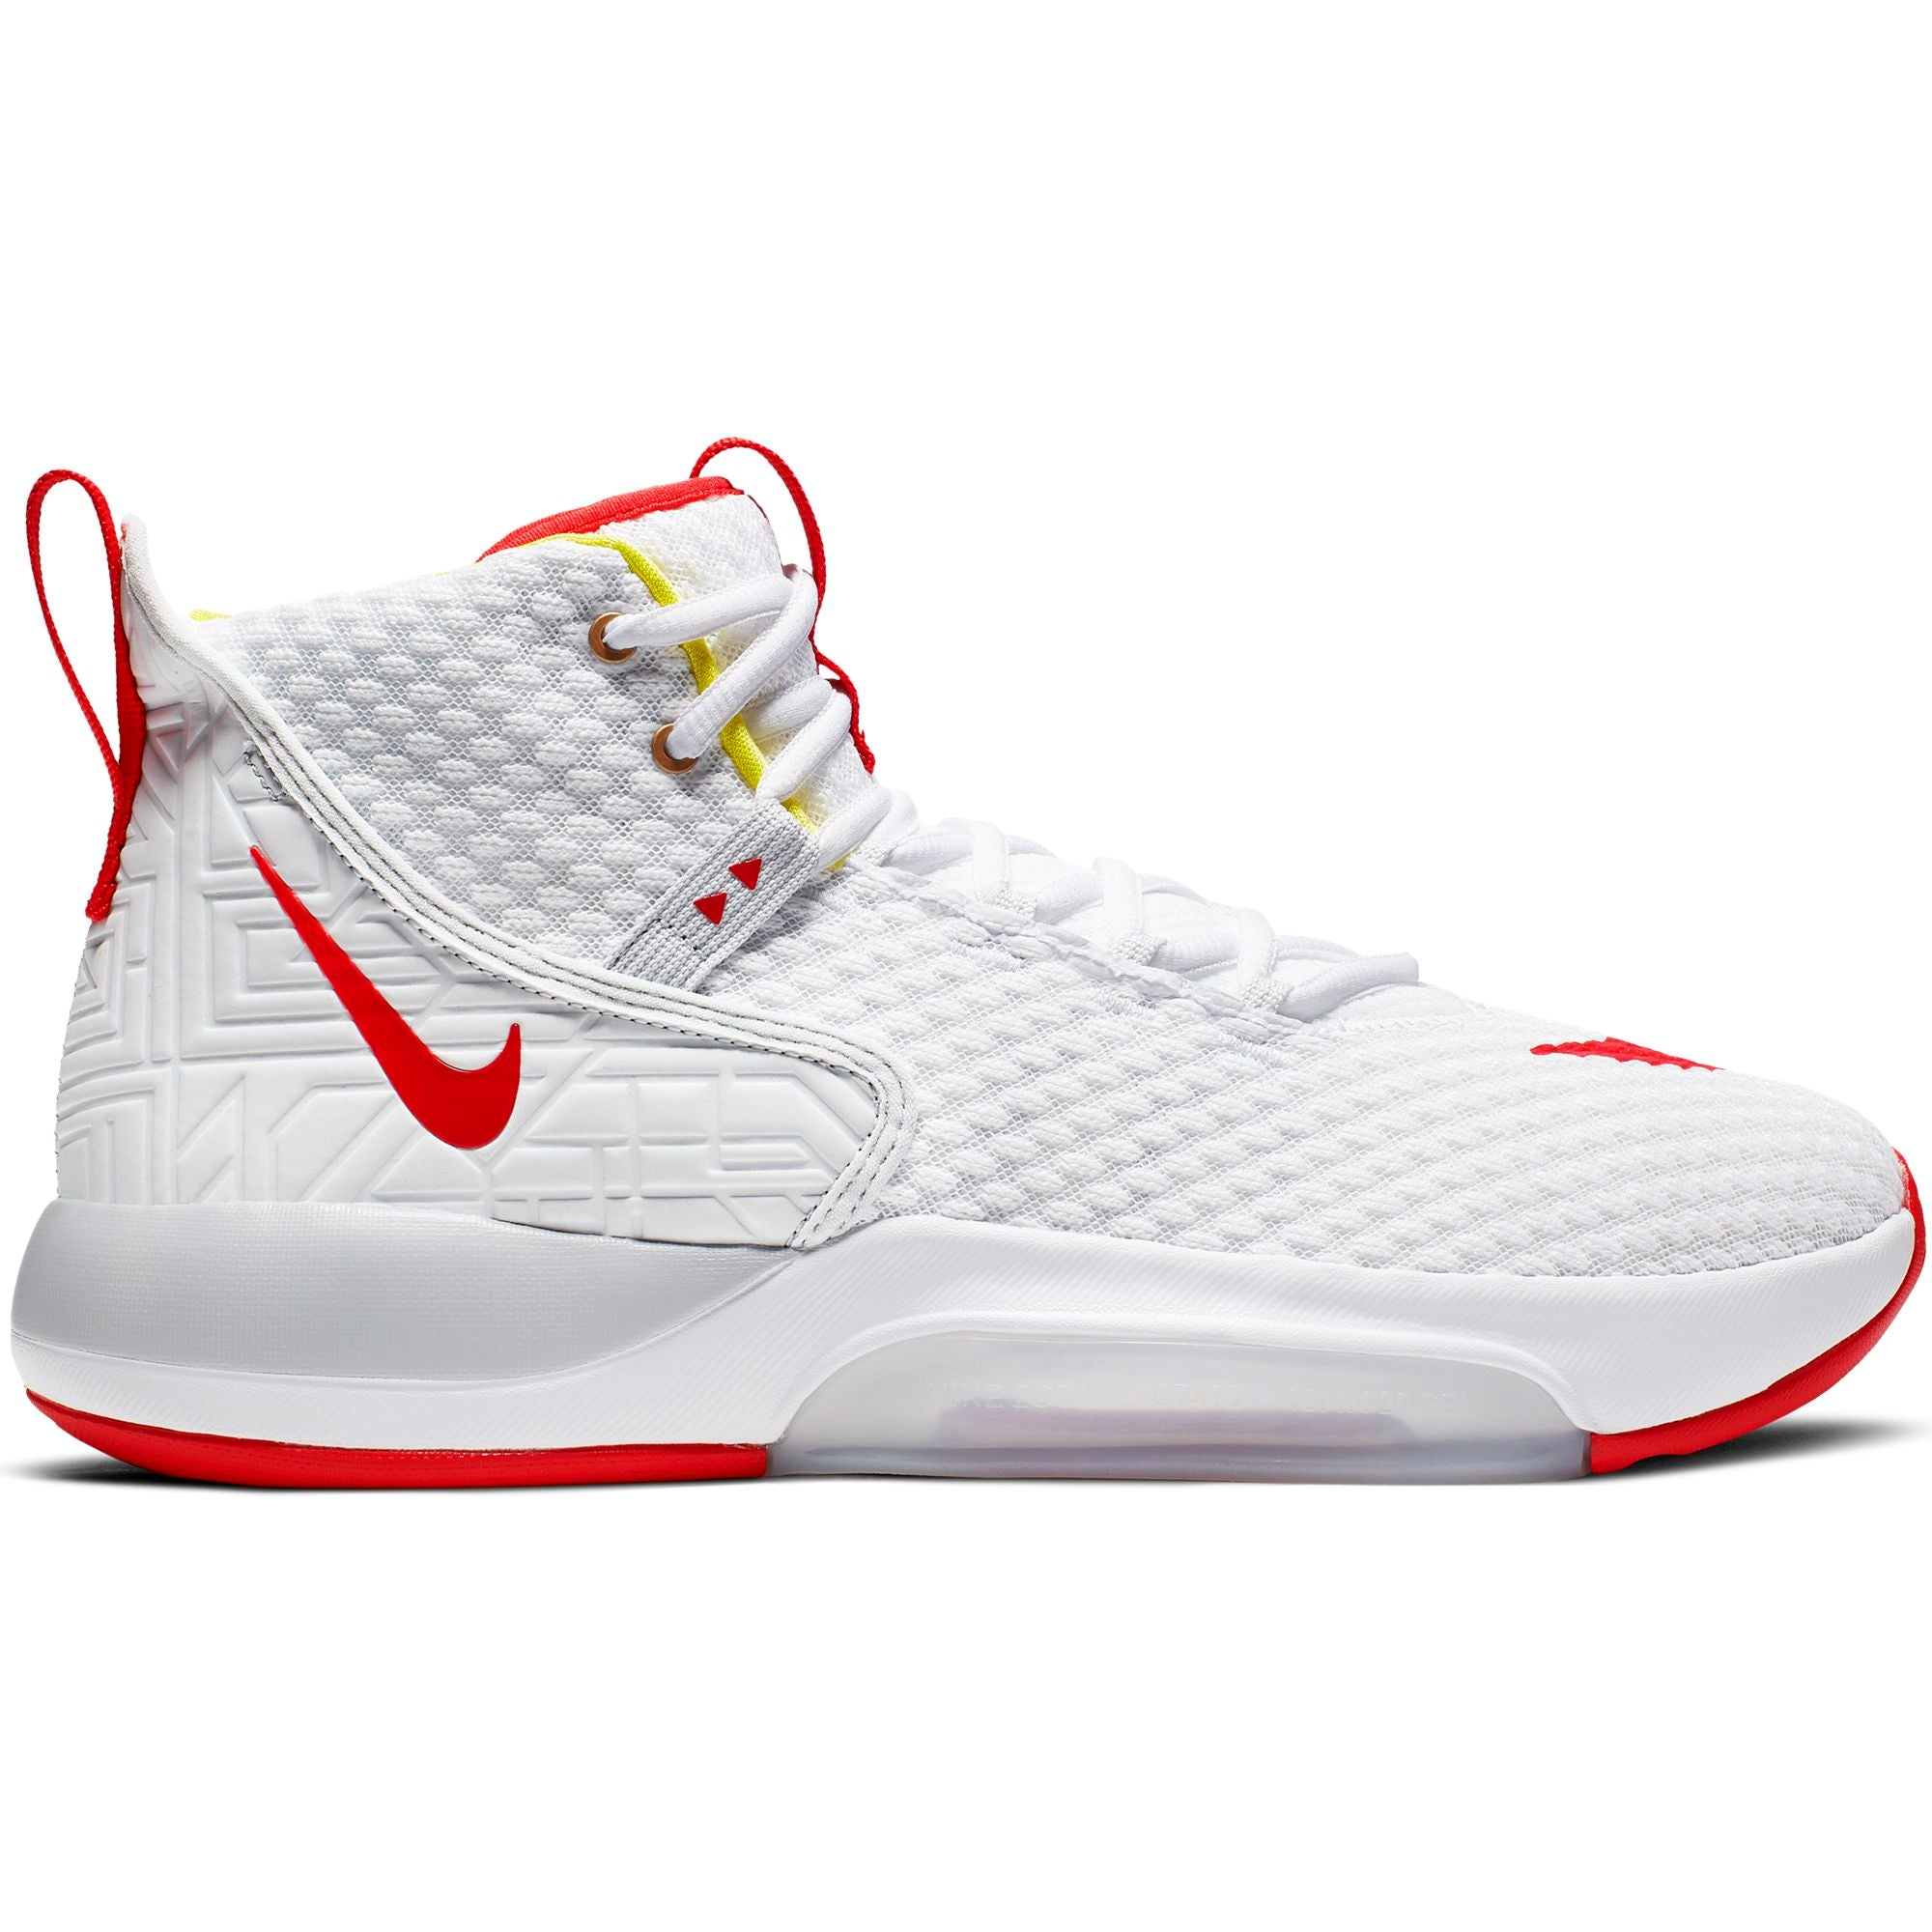 Nike Basketball Zoom Rize Boot/Shoe - White/Red Orbit/Aurora Green